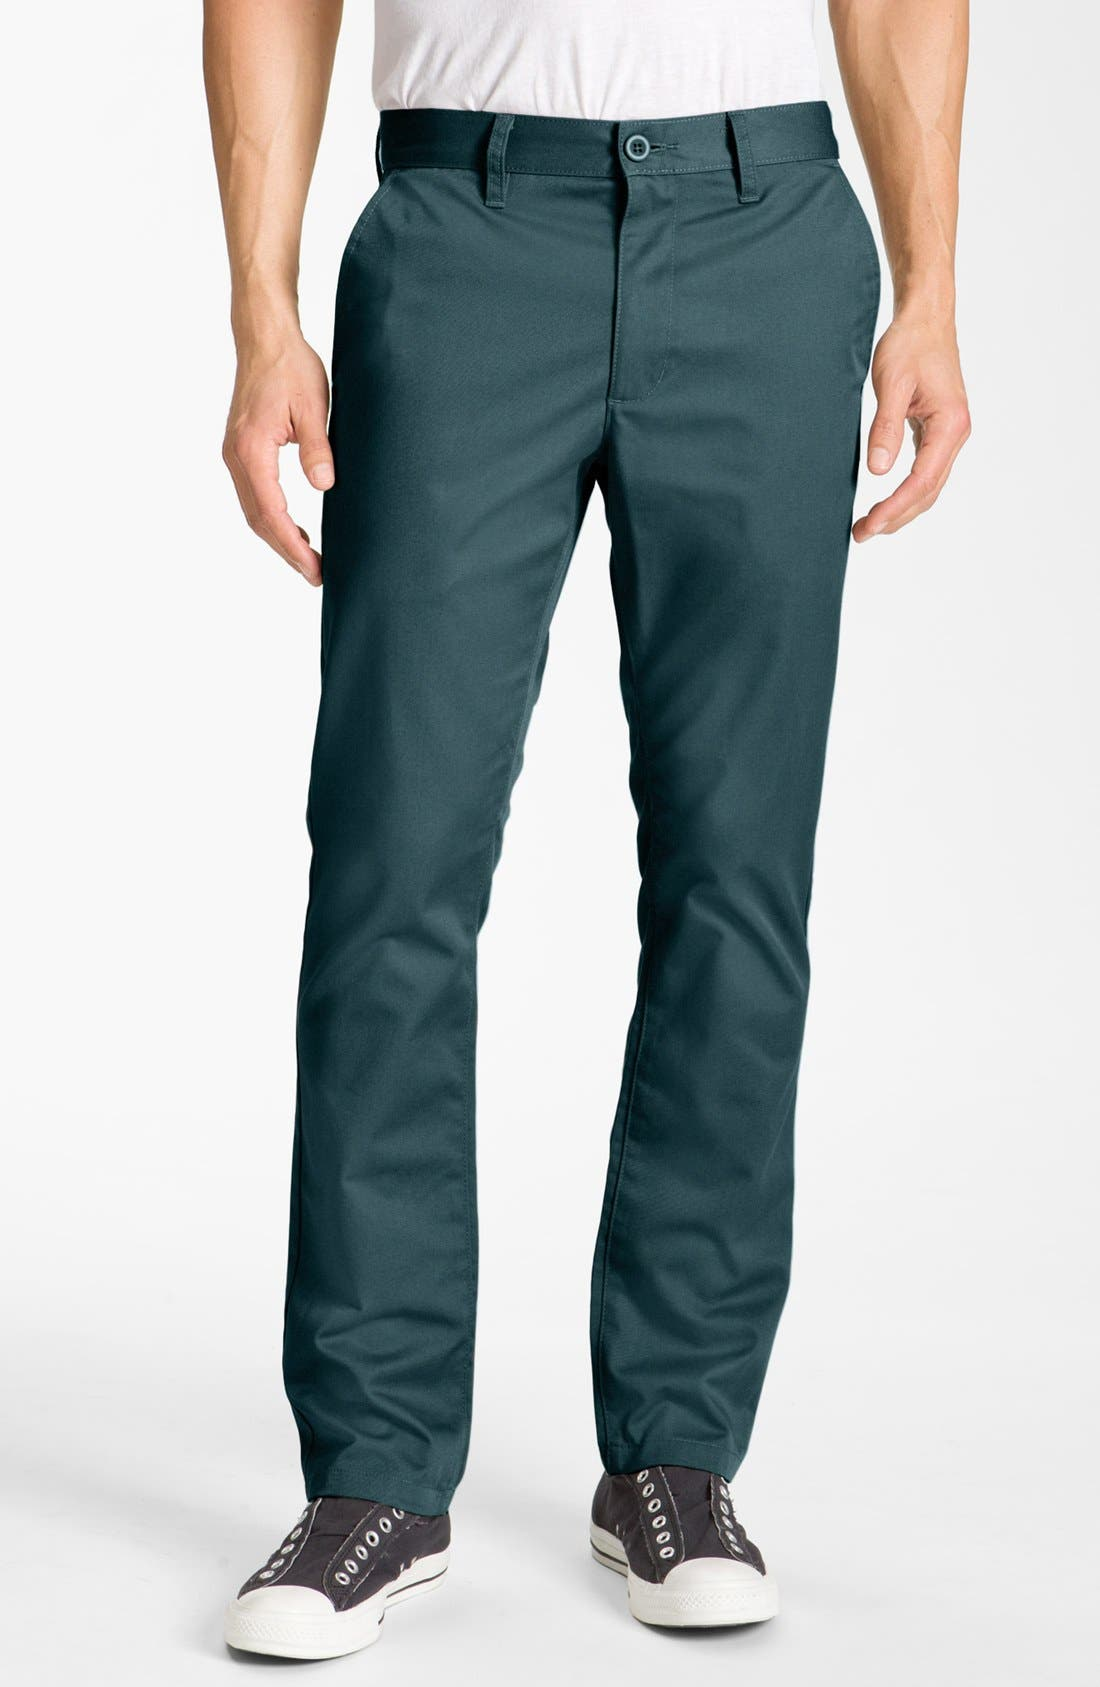 Alternate Image 1 Selected - RVCA Straight Leg Chinos (Online Only)